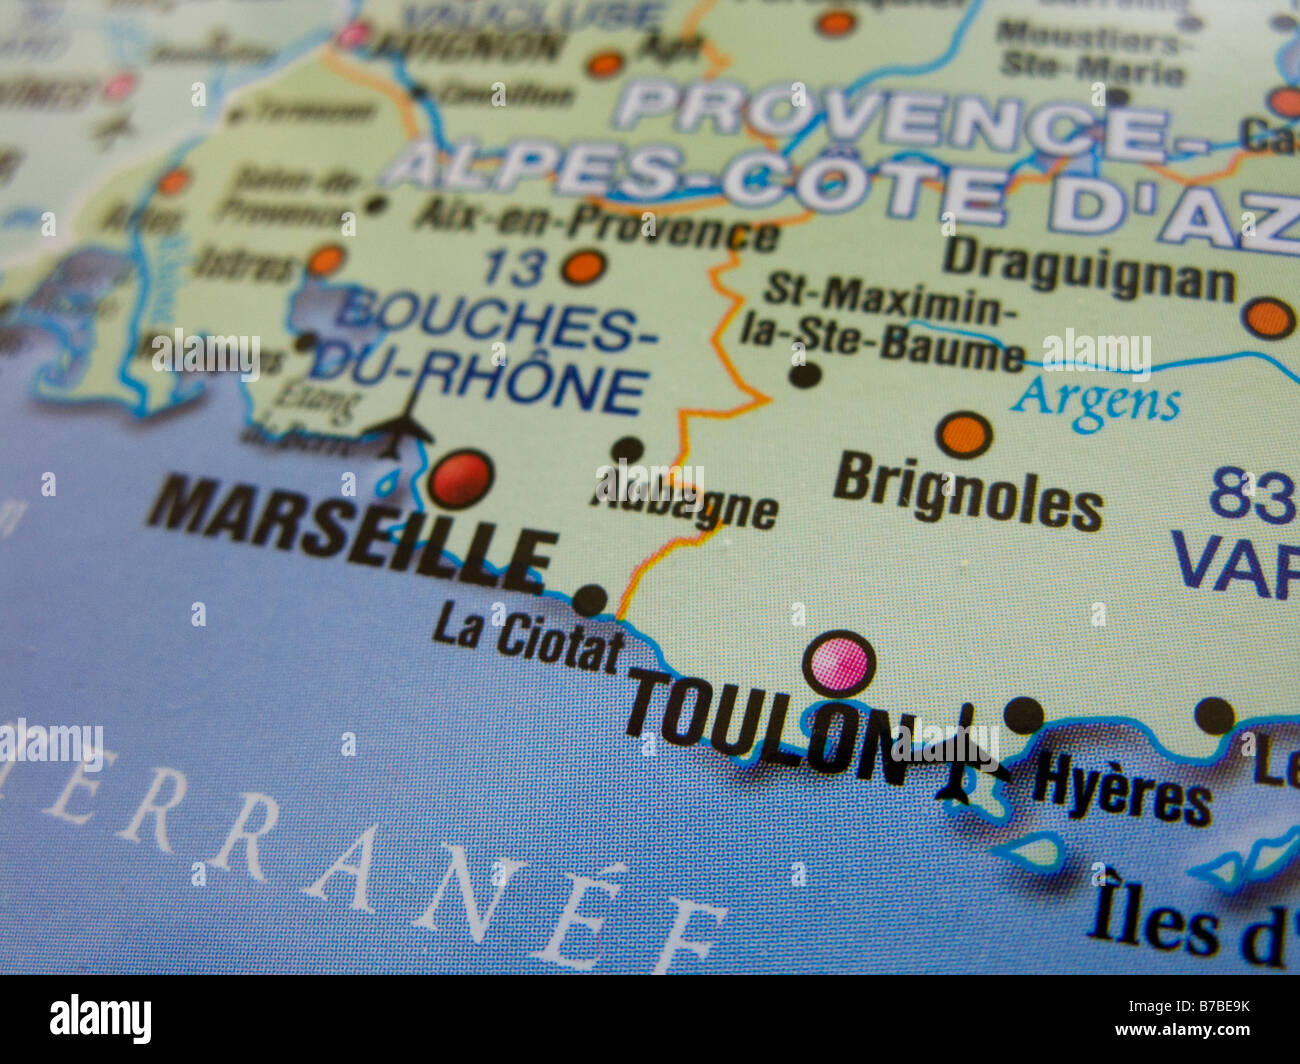 Map of France showing Marseille and Toulon and its surrounding areas